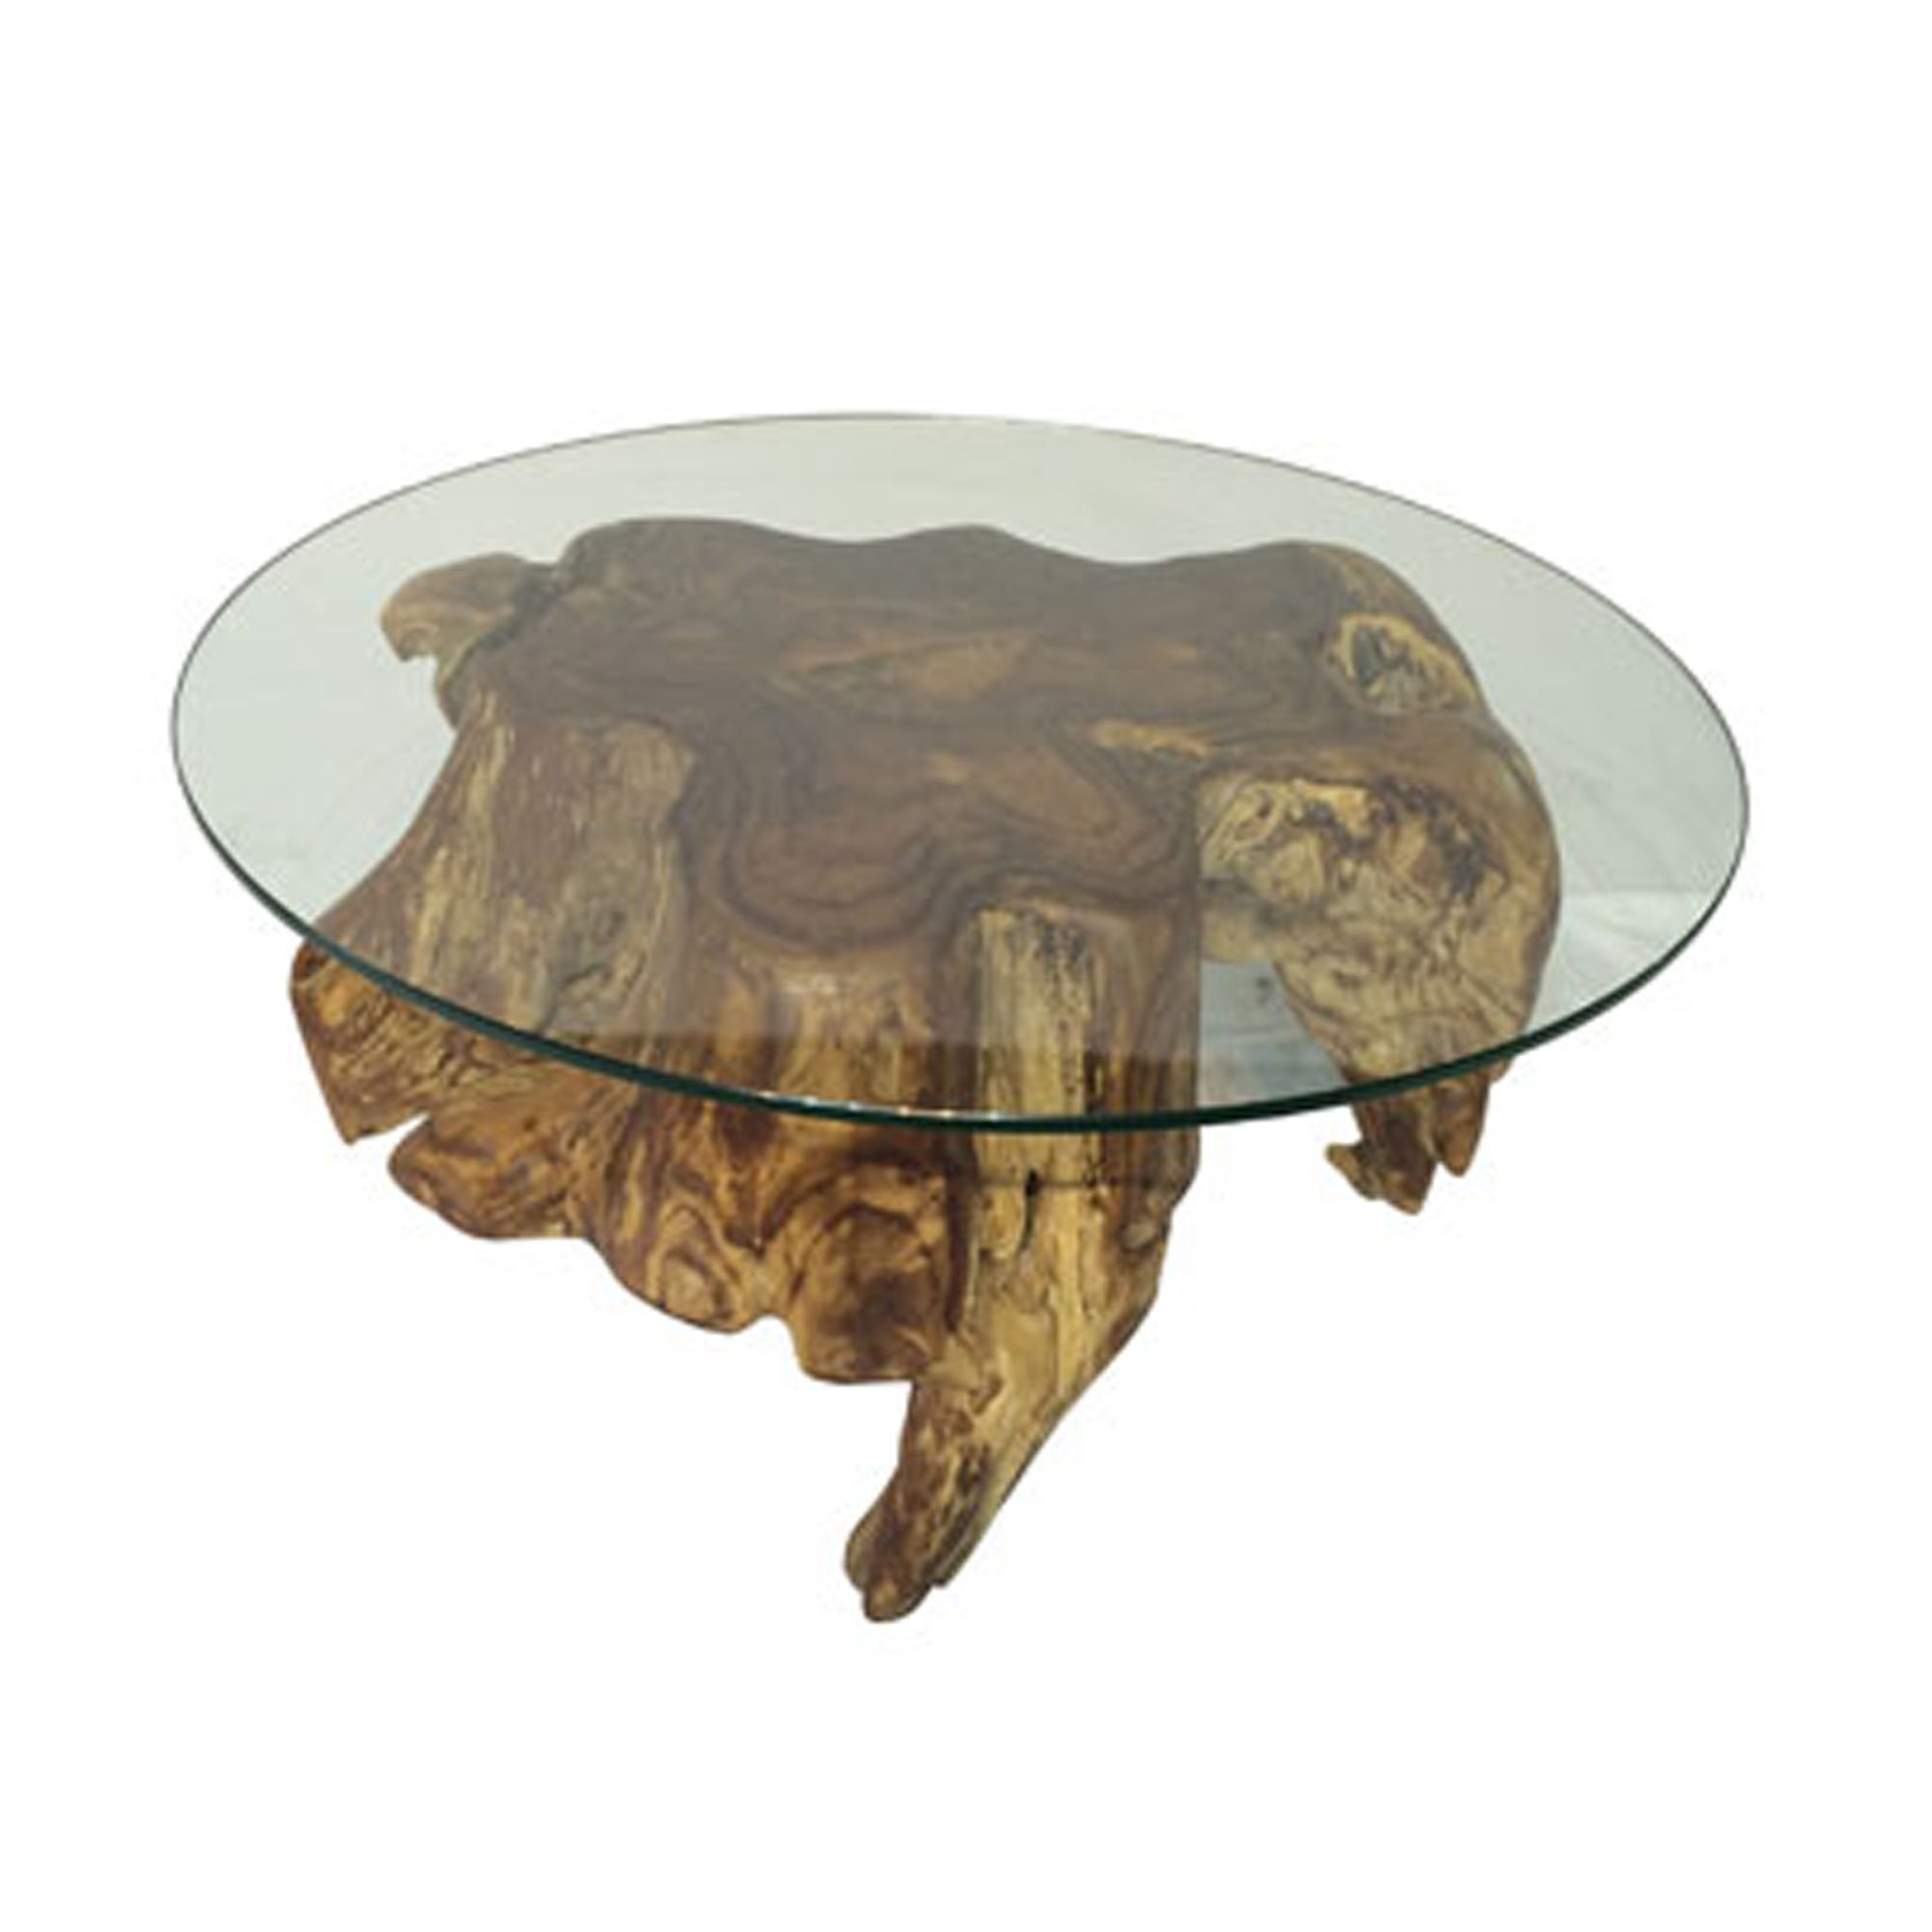 Teak Root Coffee Table Round Spider Small With Glass